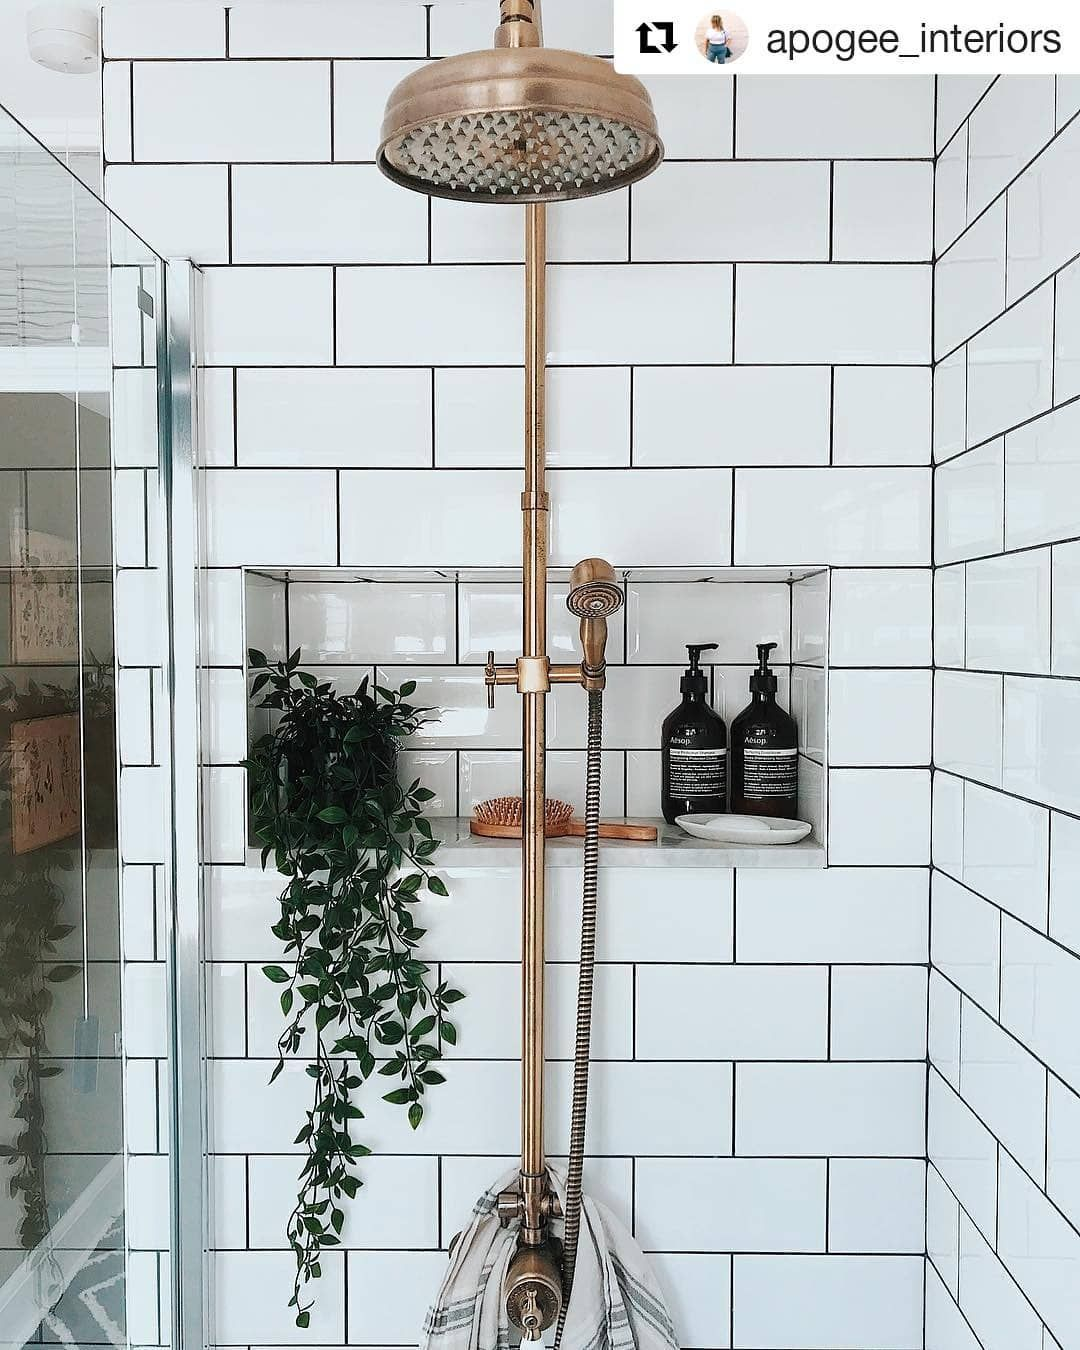 ✅20+ Best Small Bathroom Ideas - Minimalist, On Budget, and GOAT